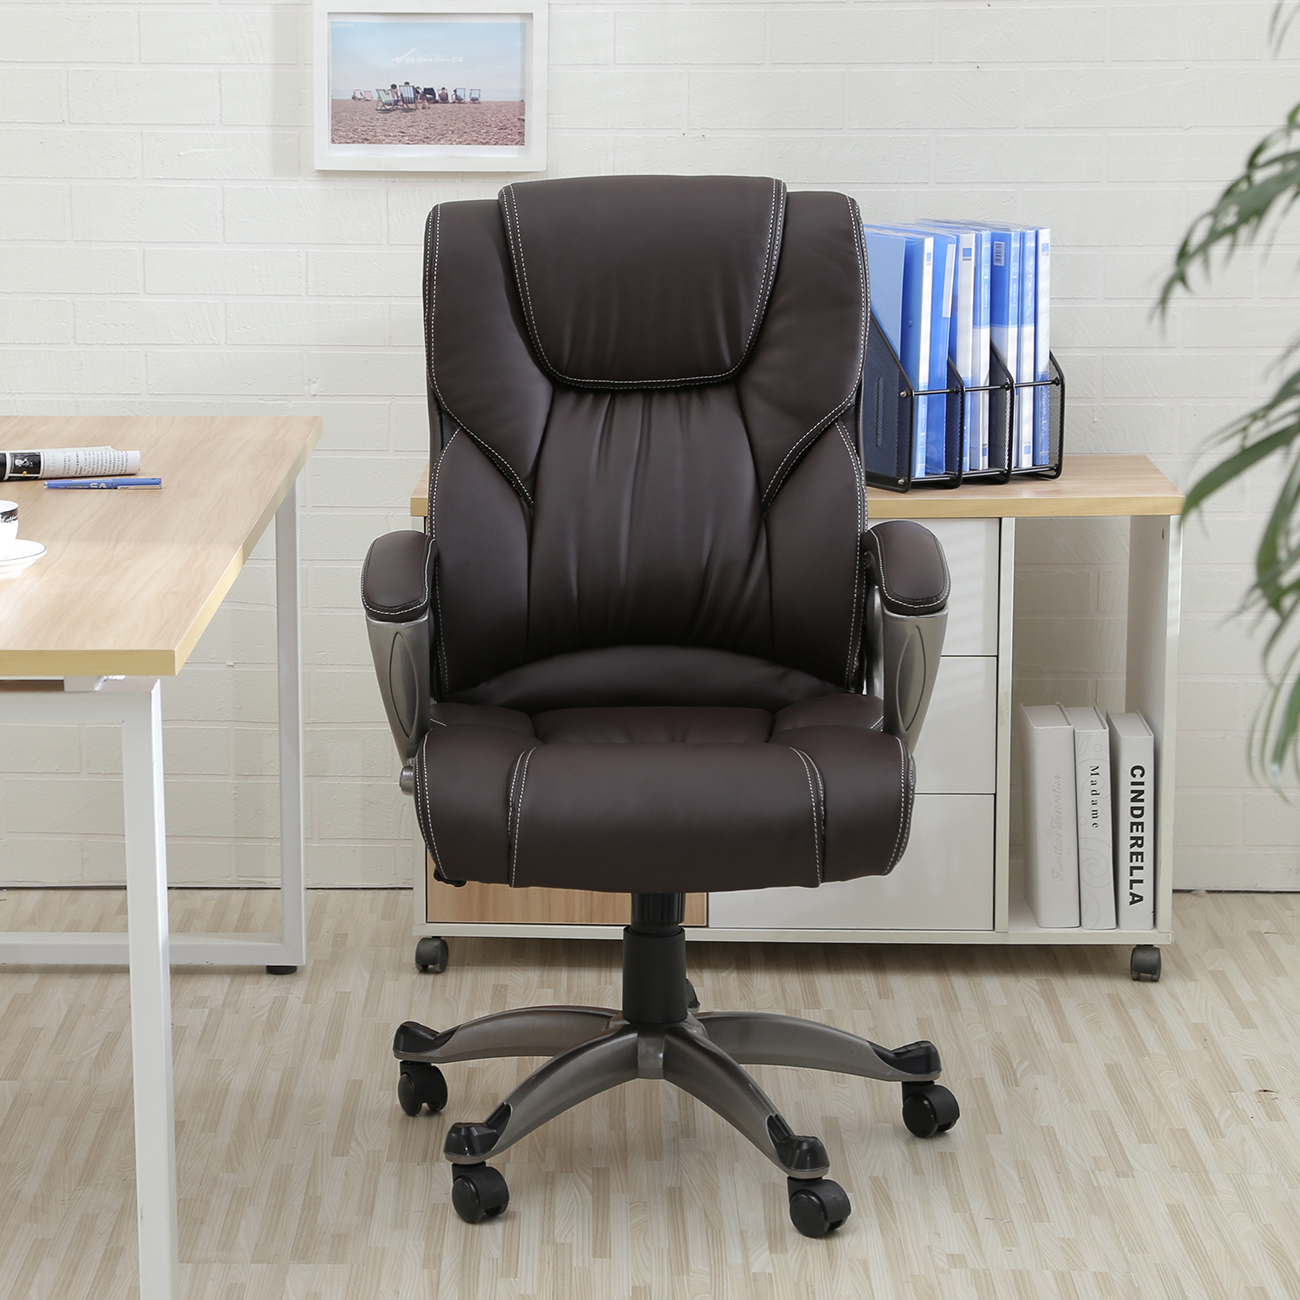 Chair Computer Executive Office Chair High Back Task Ergonomic Computer